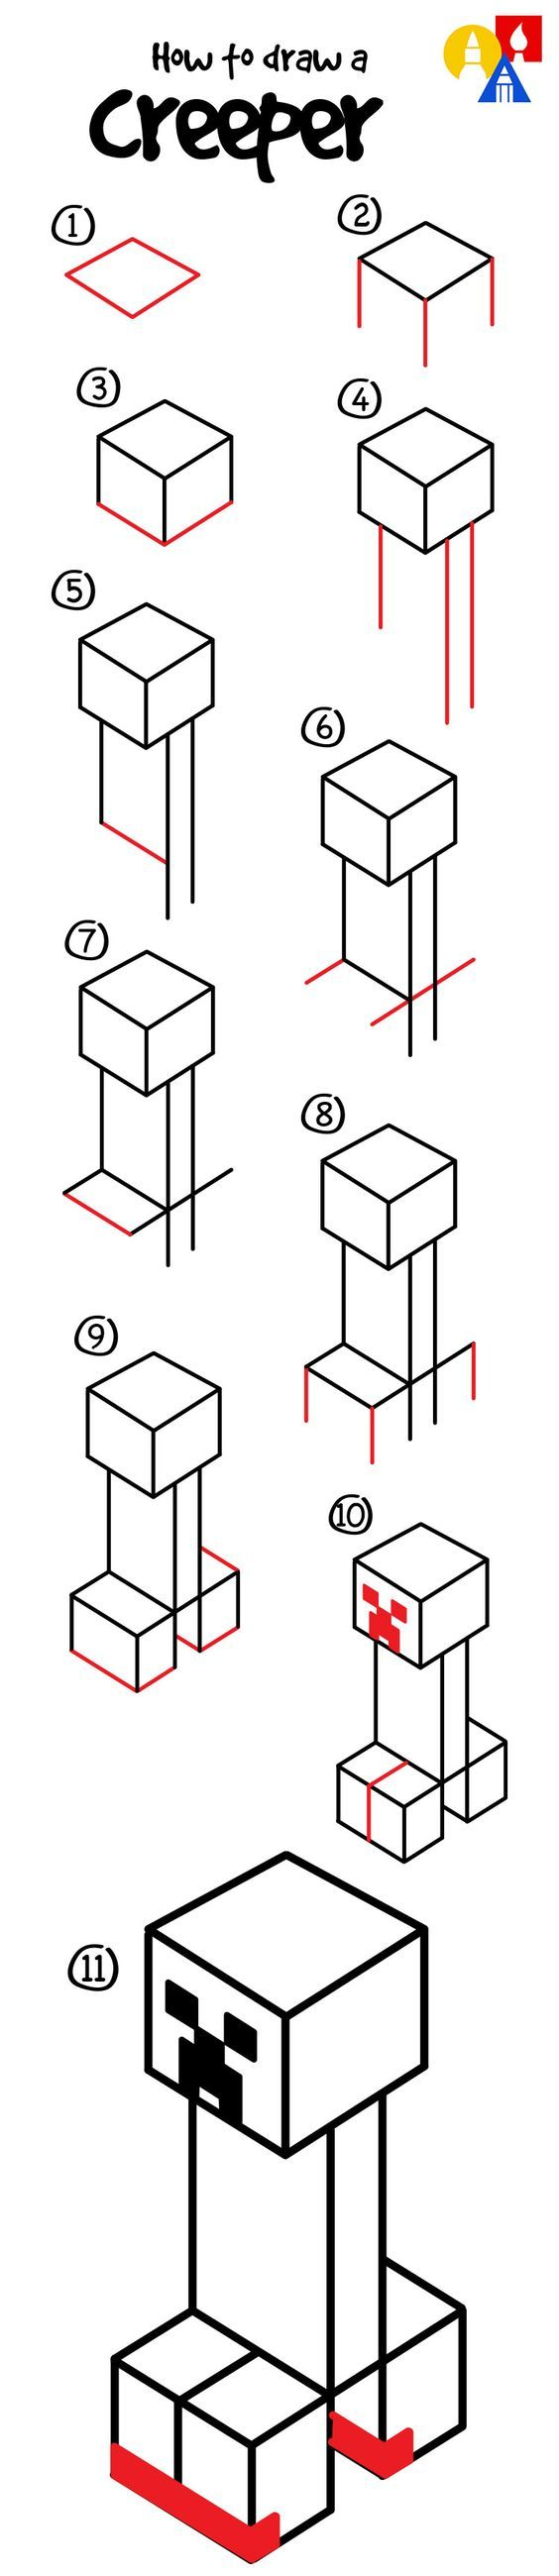 How to draw a creeper from Minecraft!: